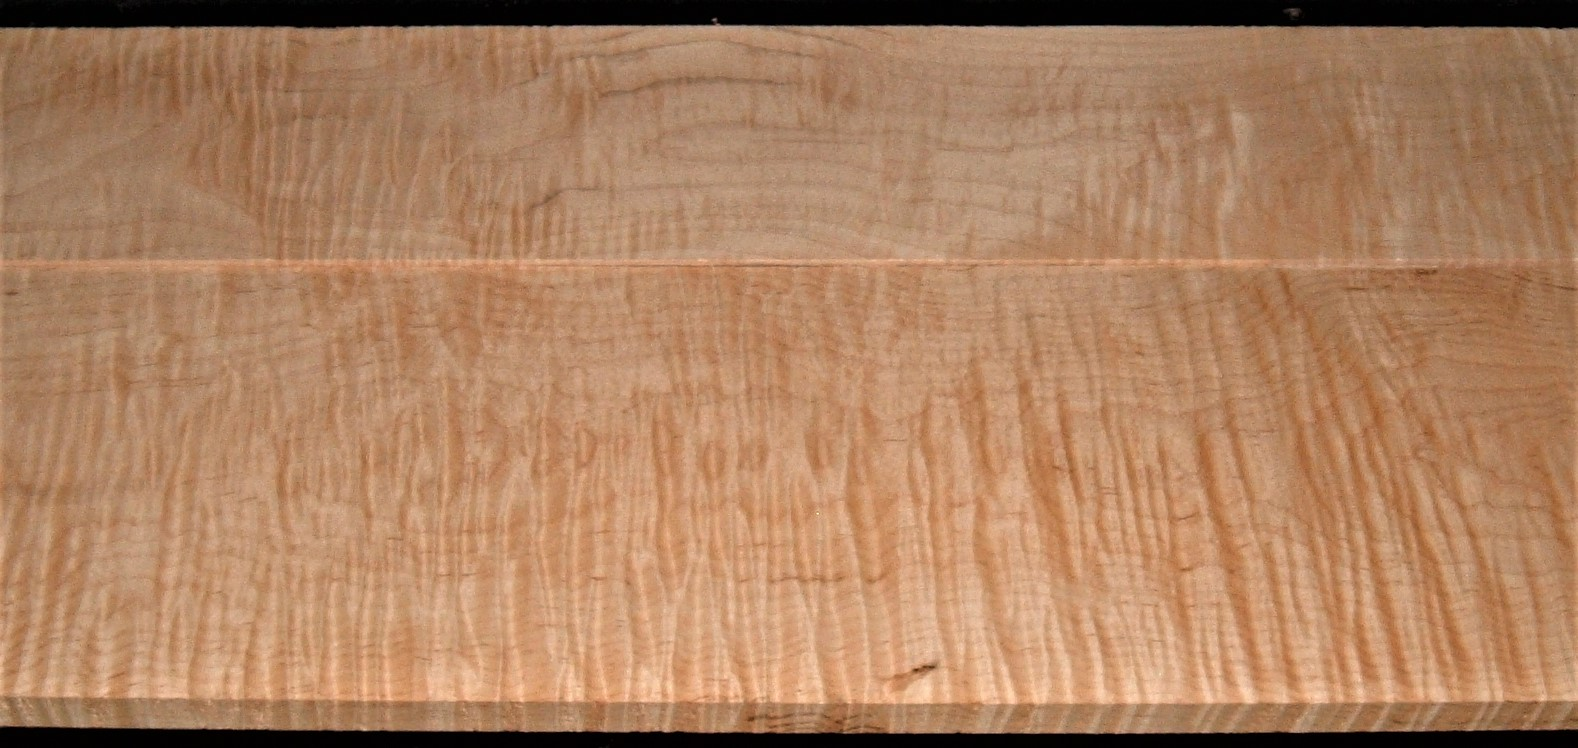 M2011-827JJ, 2 bd, 13/16x5-5/8x46, 3/4x7-7/8x46, Curly Tiger Maple